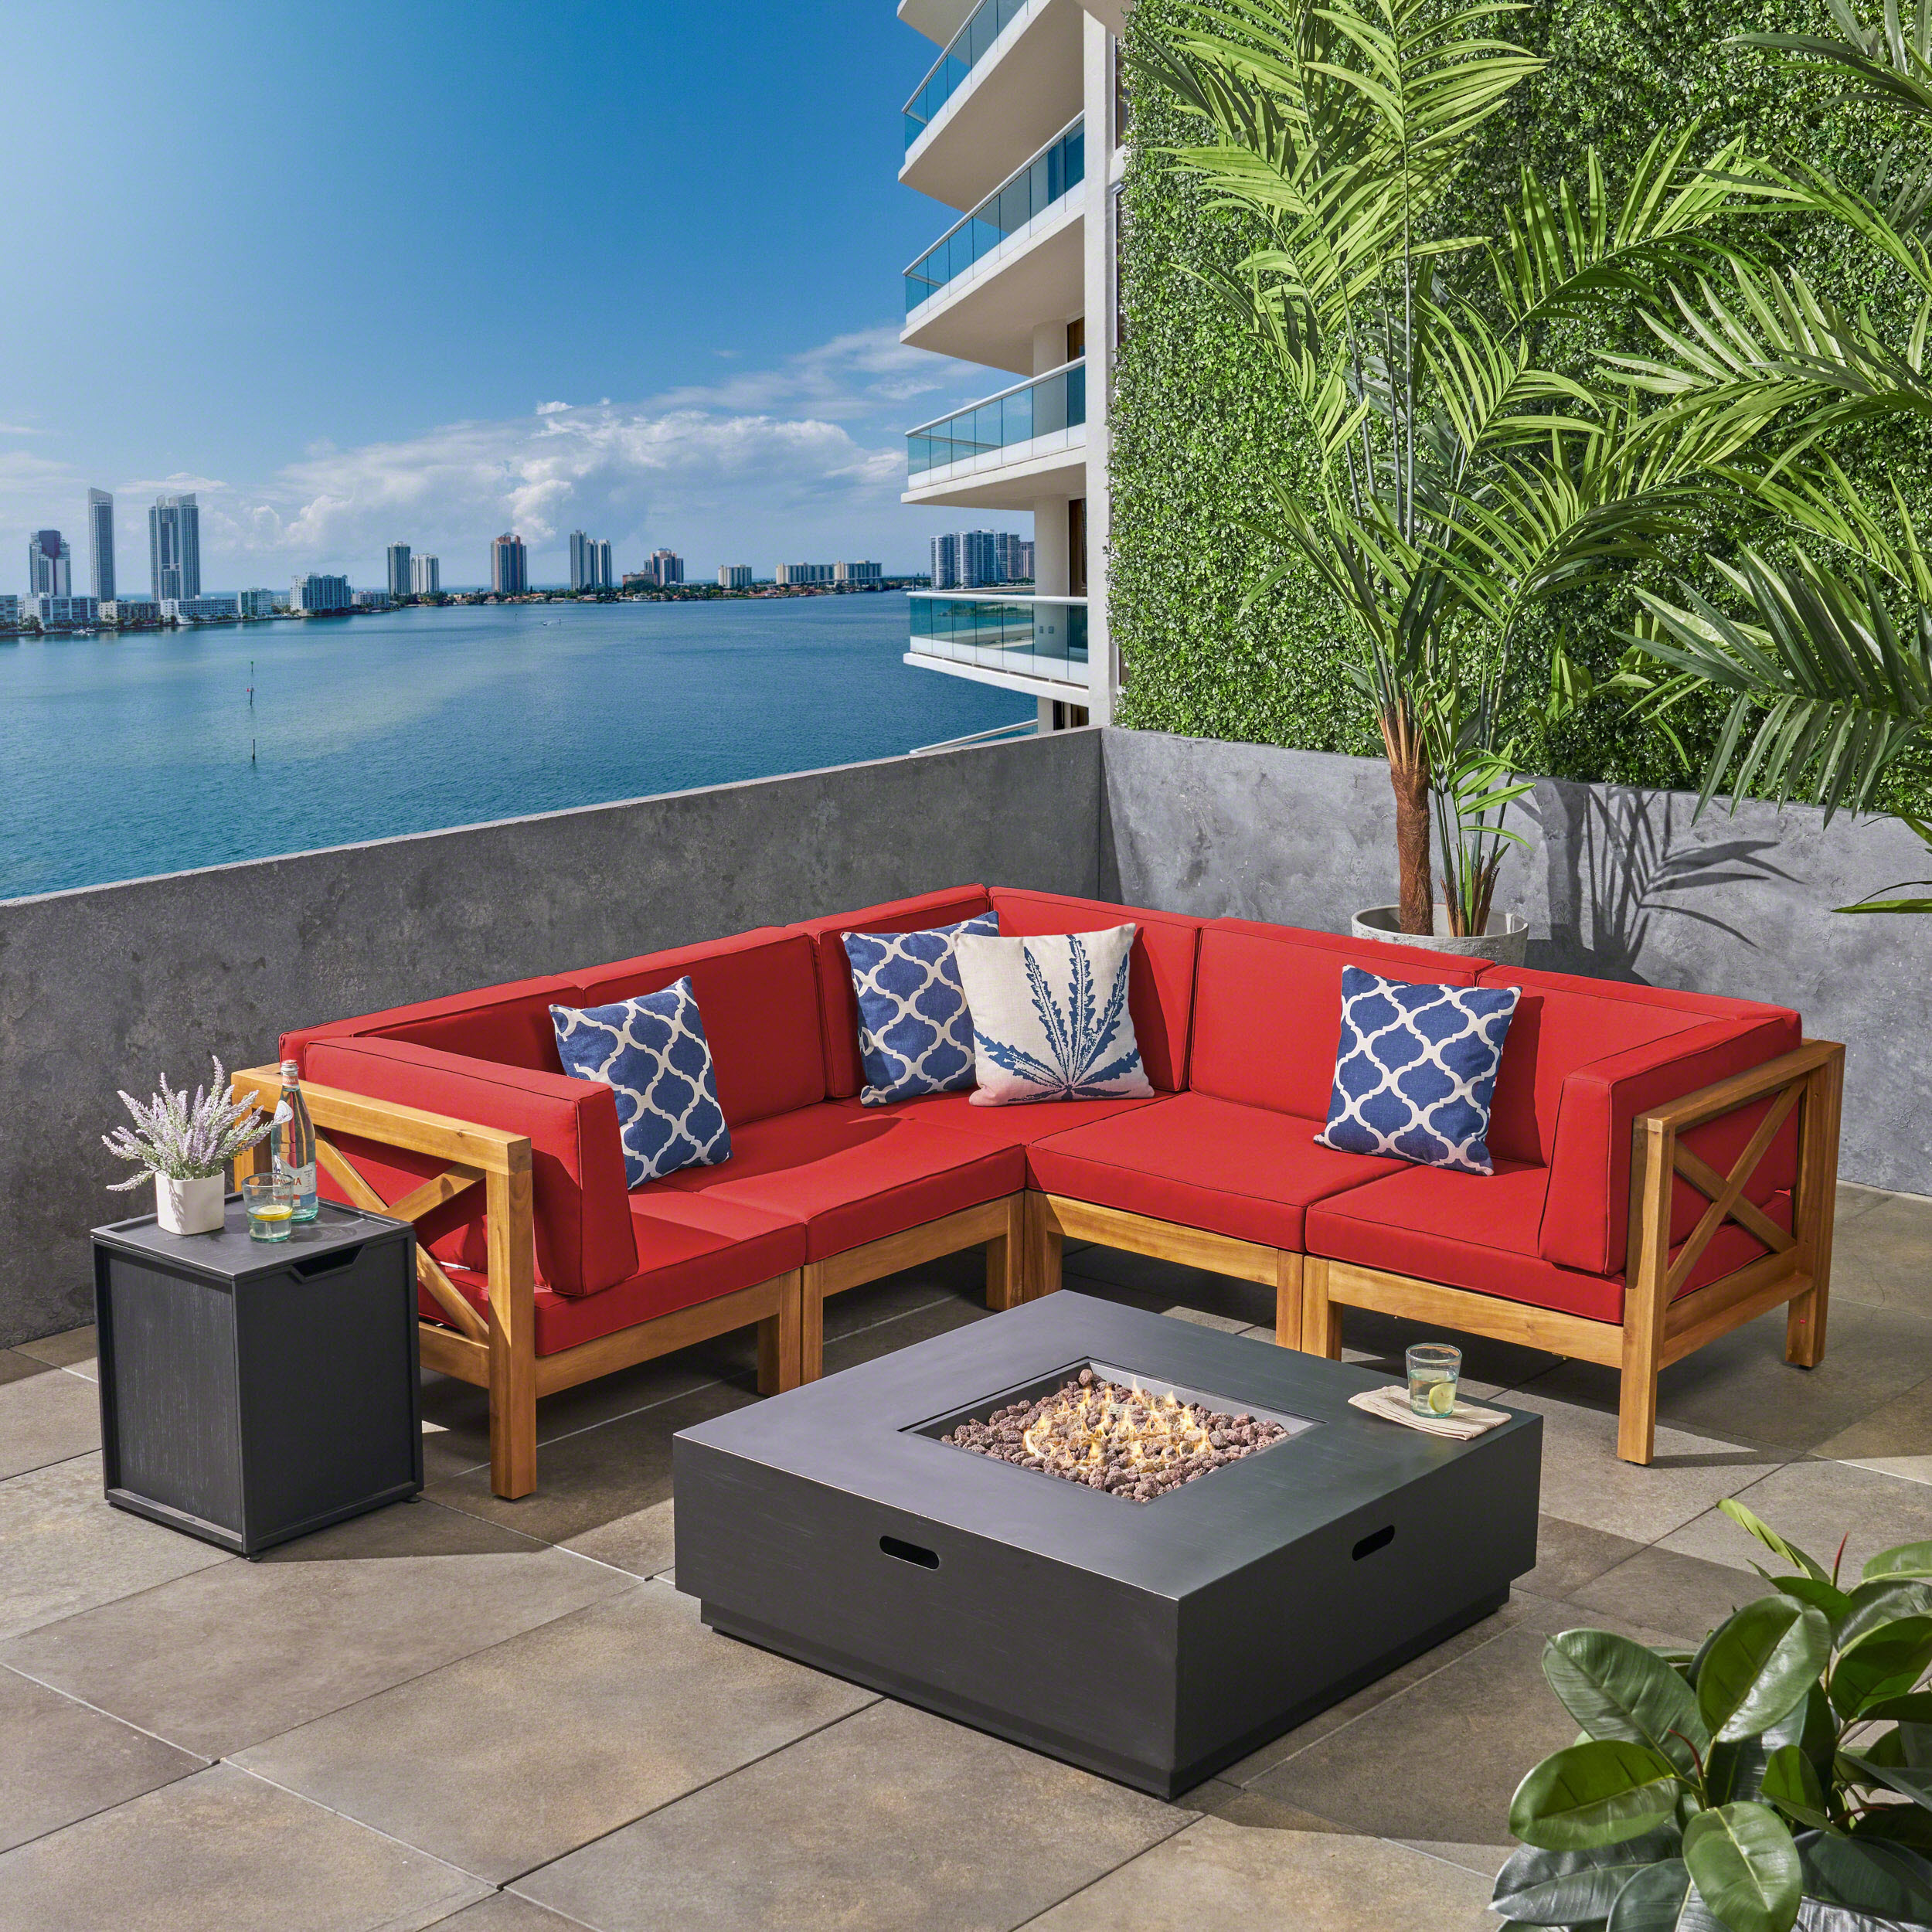 Markus Outdoor 7 Piece Acacia Wood Sectional Sofa Set with Cushions and Fire Pit, Teak, Red, Dark Gray